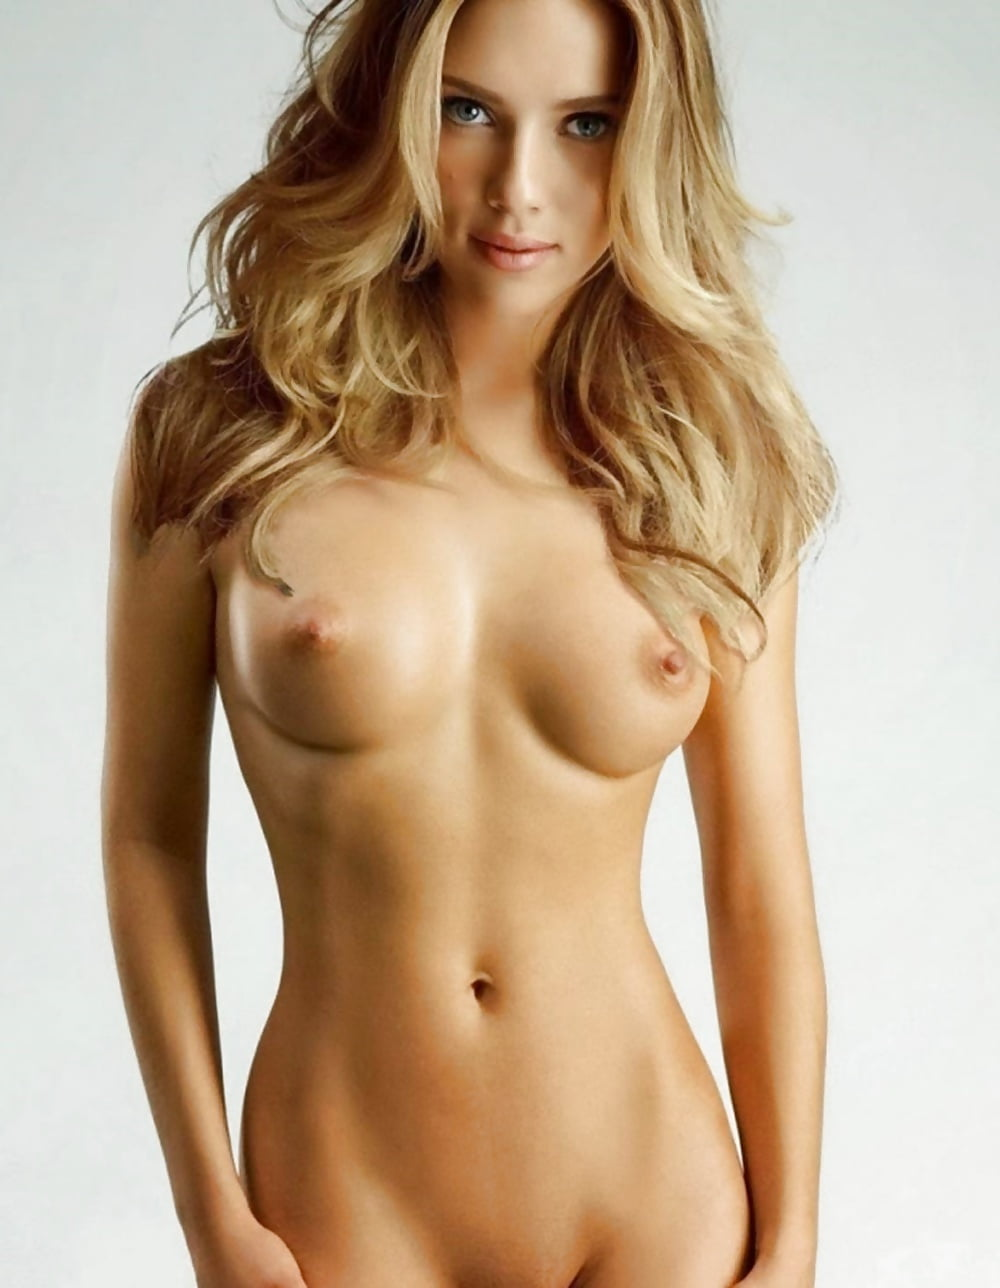 Young Hollywood Actresses Hot Naked